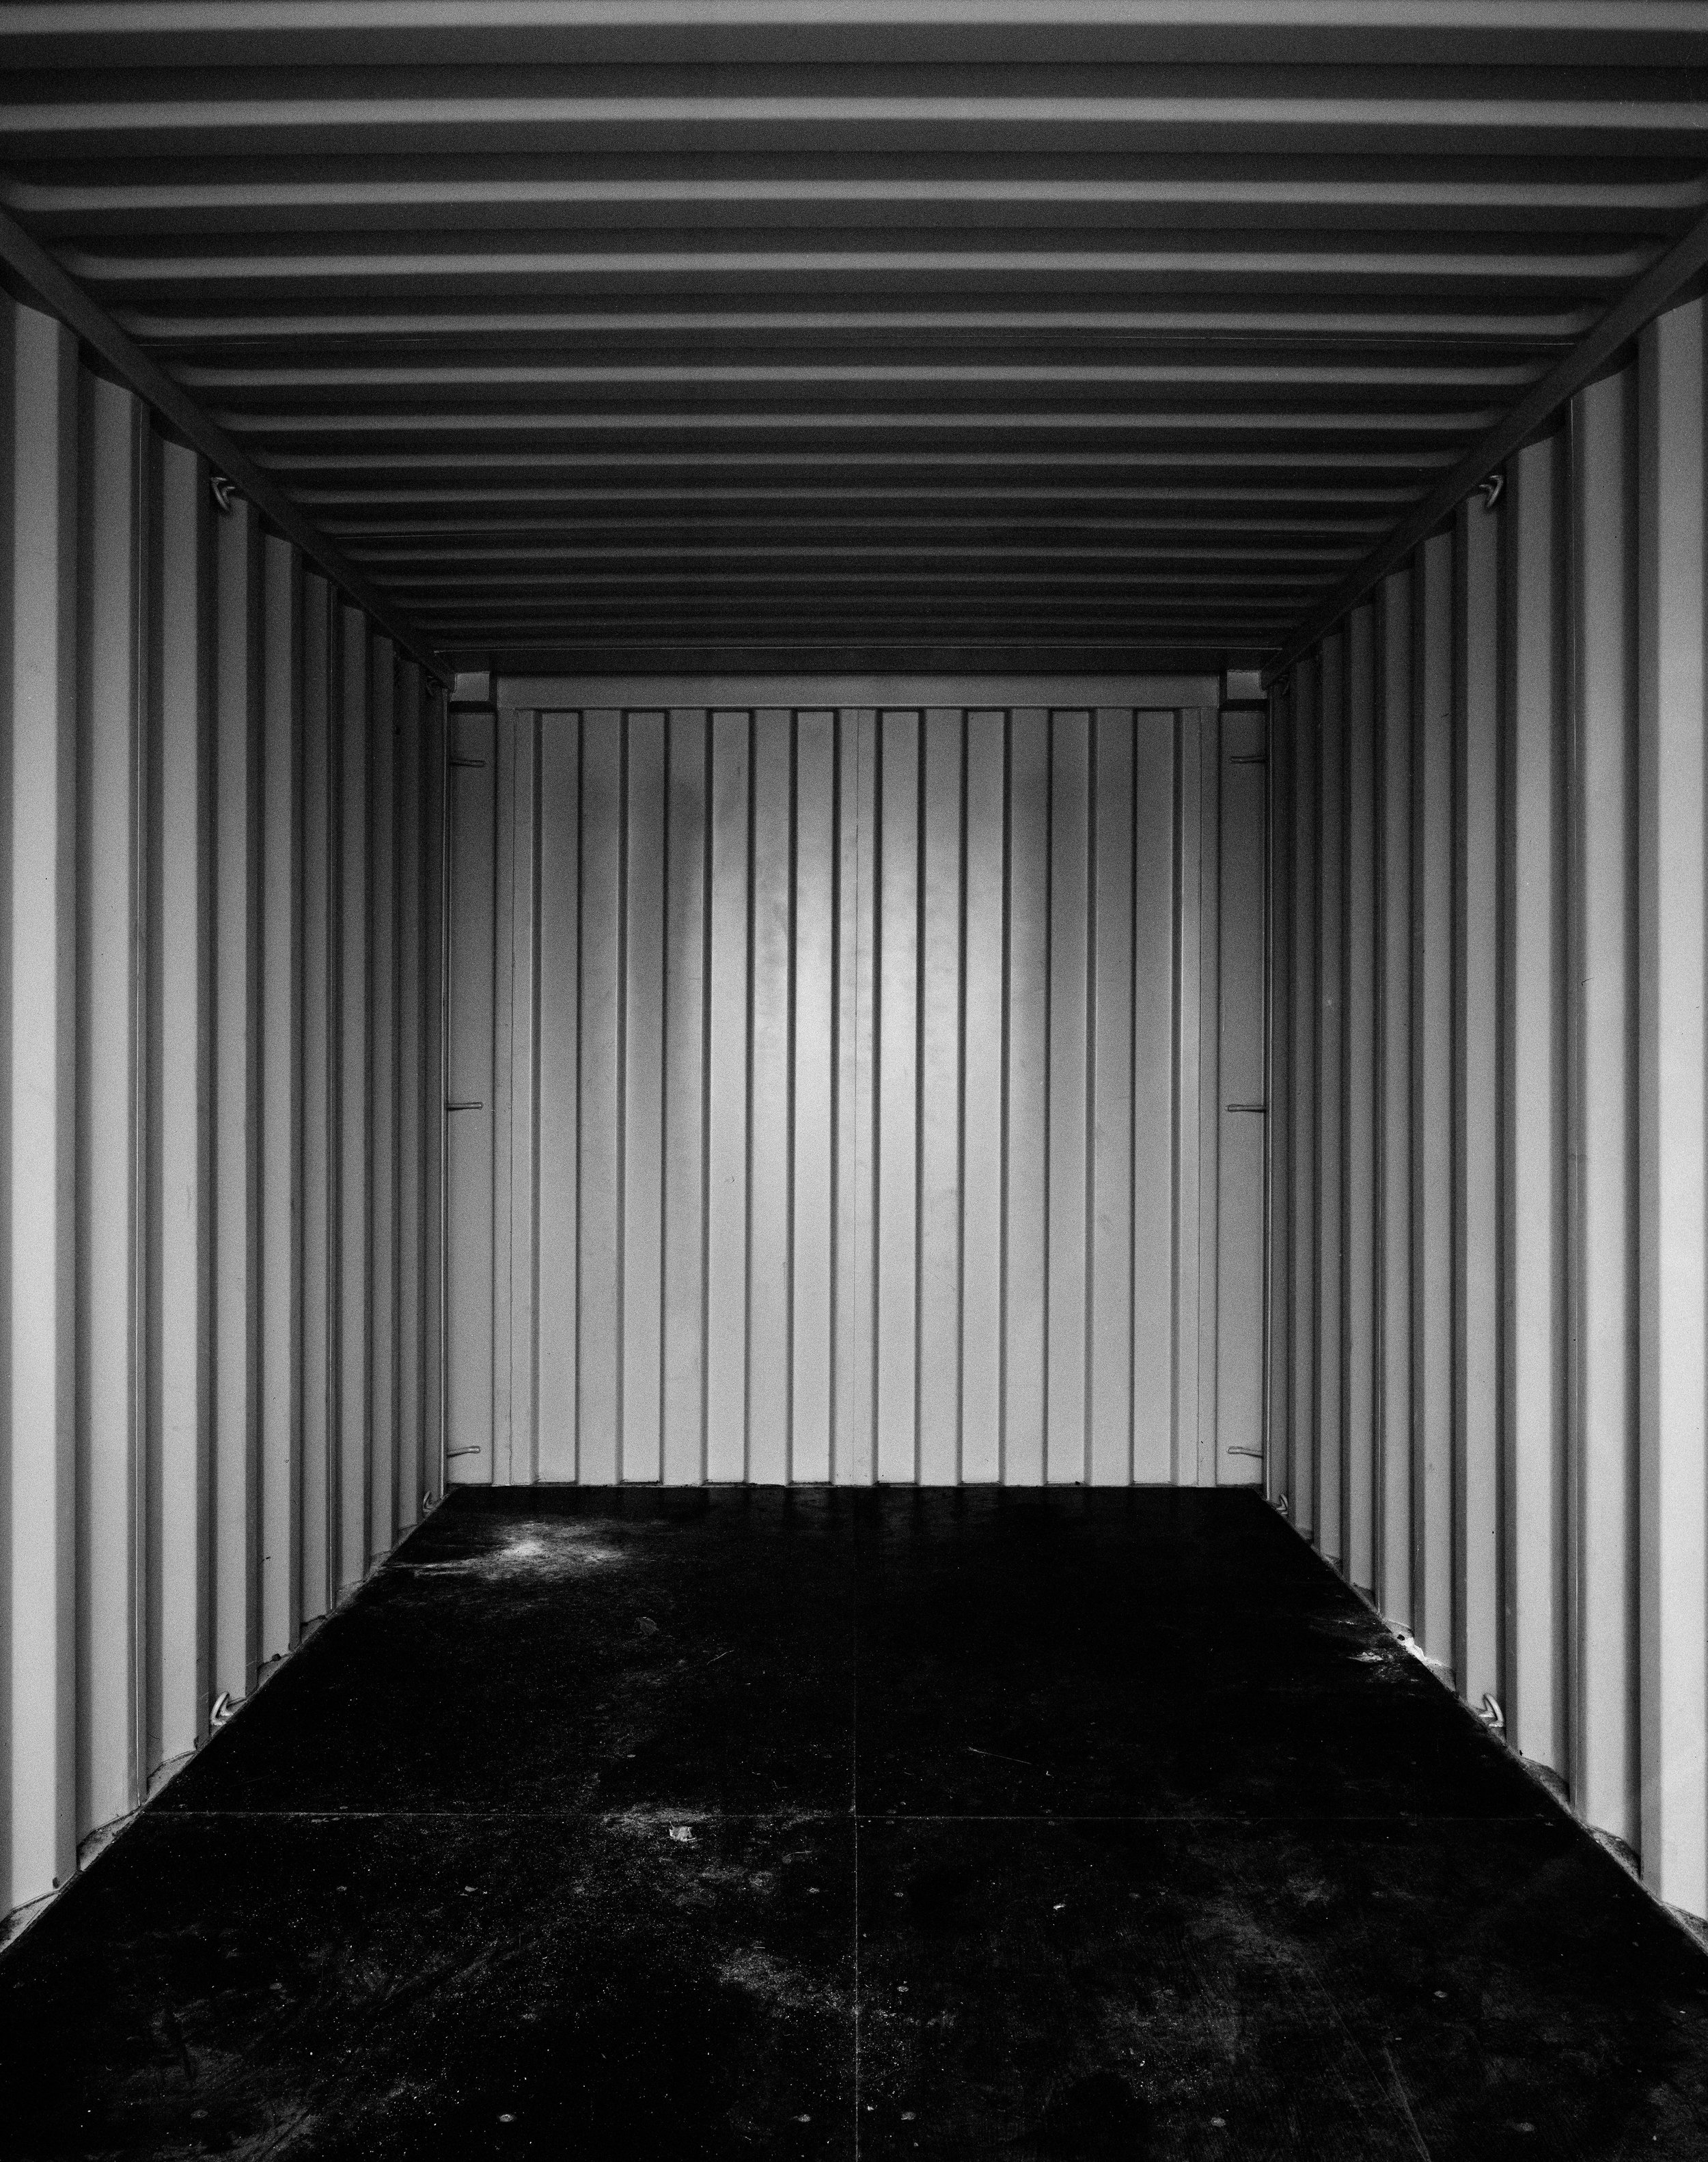 Drones are controlled from storage containers similar to this one with the dimensions being 8x8x20 ft. This puts into question whether these spaces could be considered a battlezone as the pilots operate in those areas. This is made apparent as PTSD is not only achievable in these conditions, but some claim there is a higher percentage of this happening. The distance is important as the operators control the weapons from a risk-free zone, spurring some to call it a type of 'post-heroic' warfare.